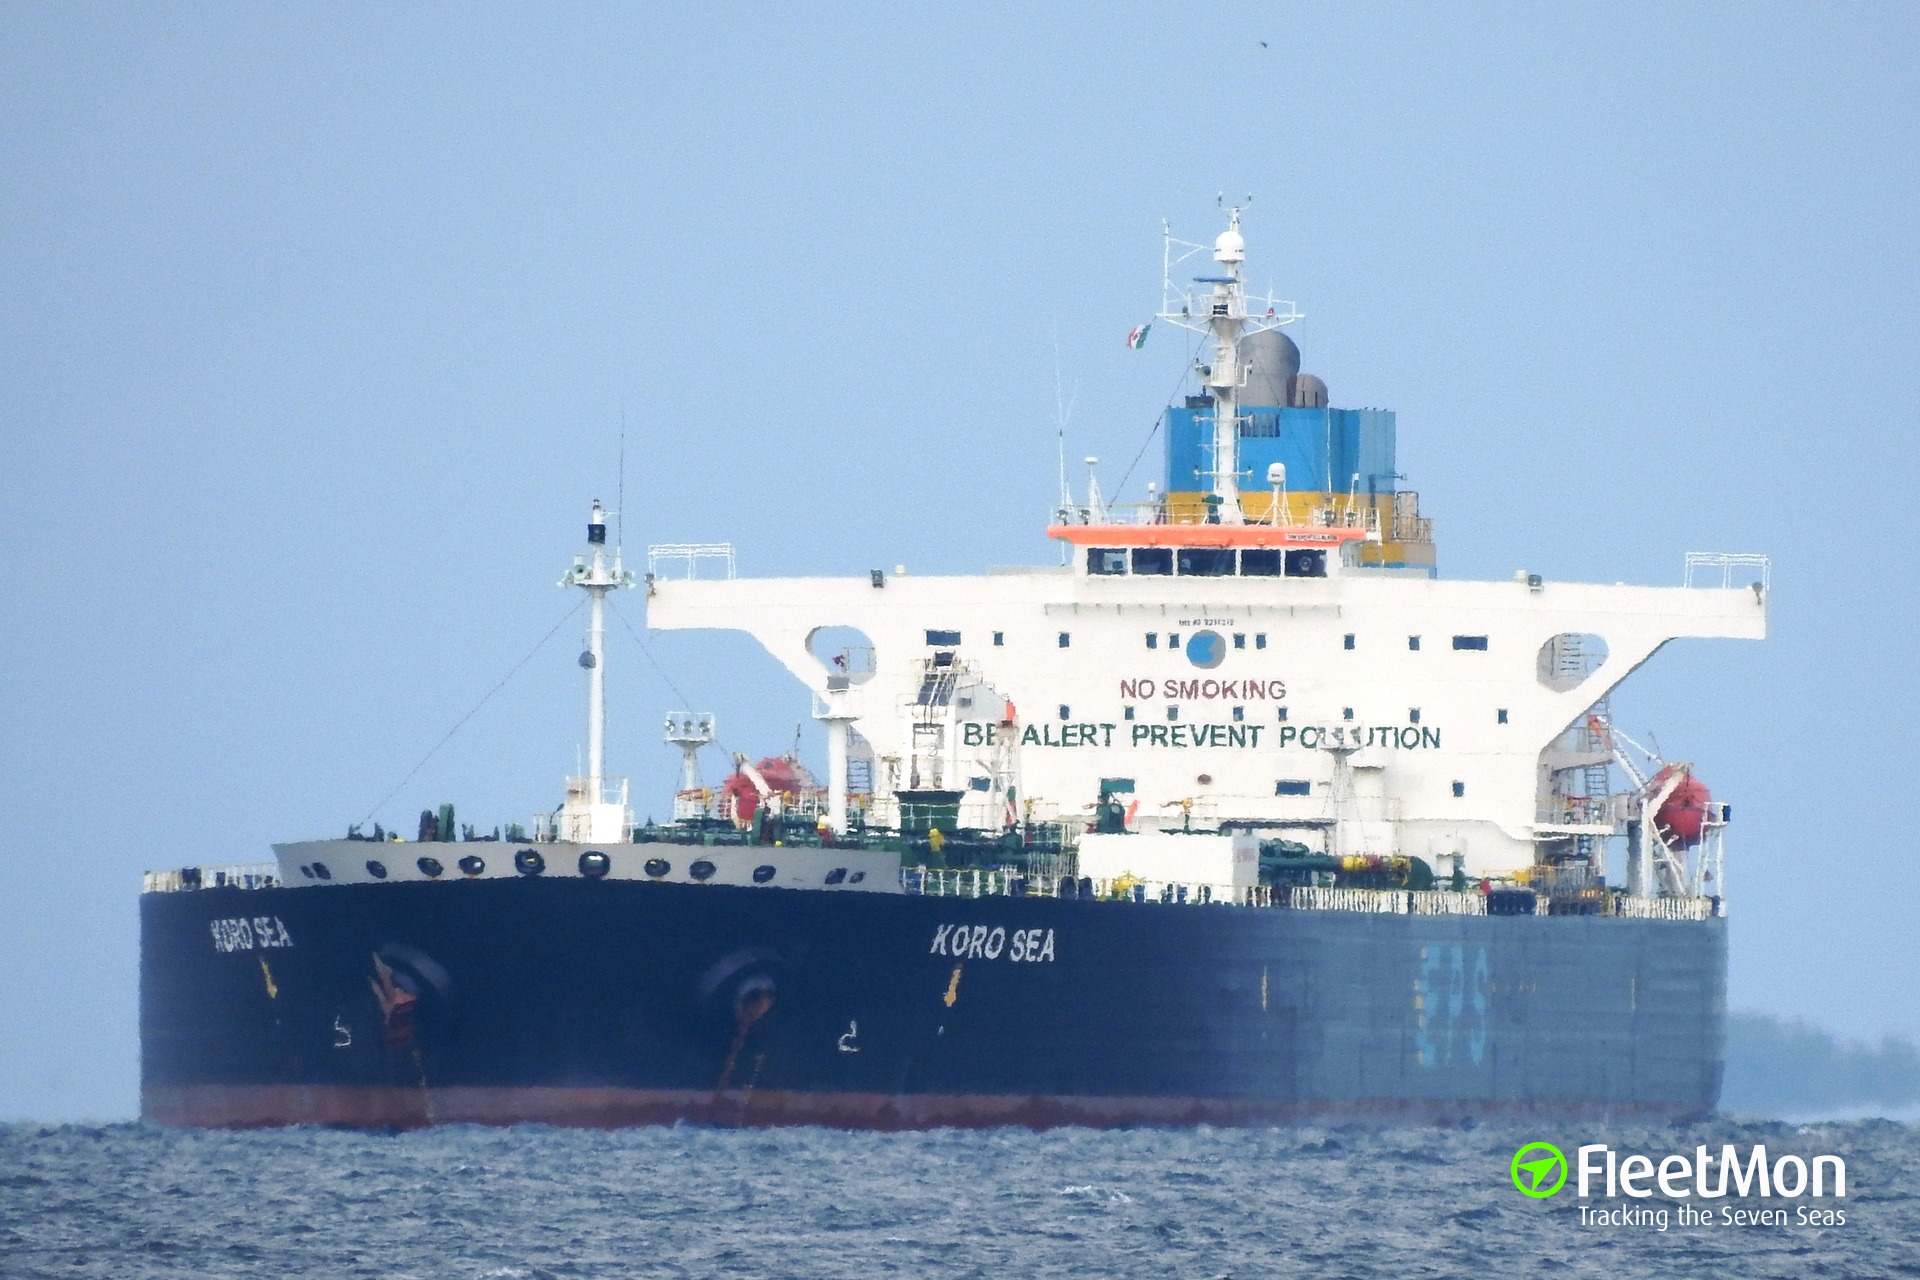 Crude oil tanker attacked, robbed in Singapore Strait | KORO